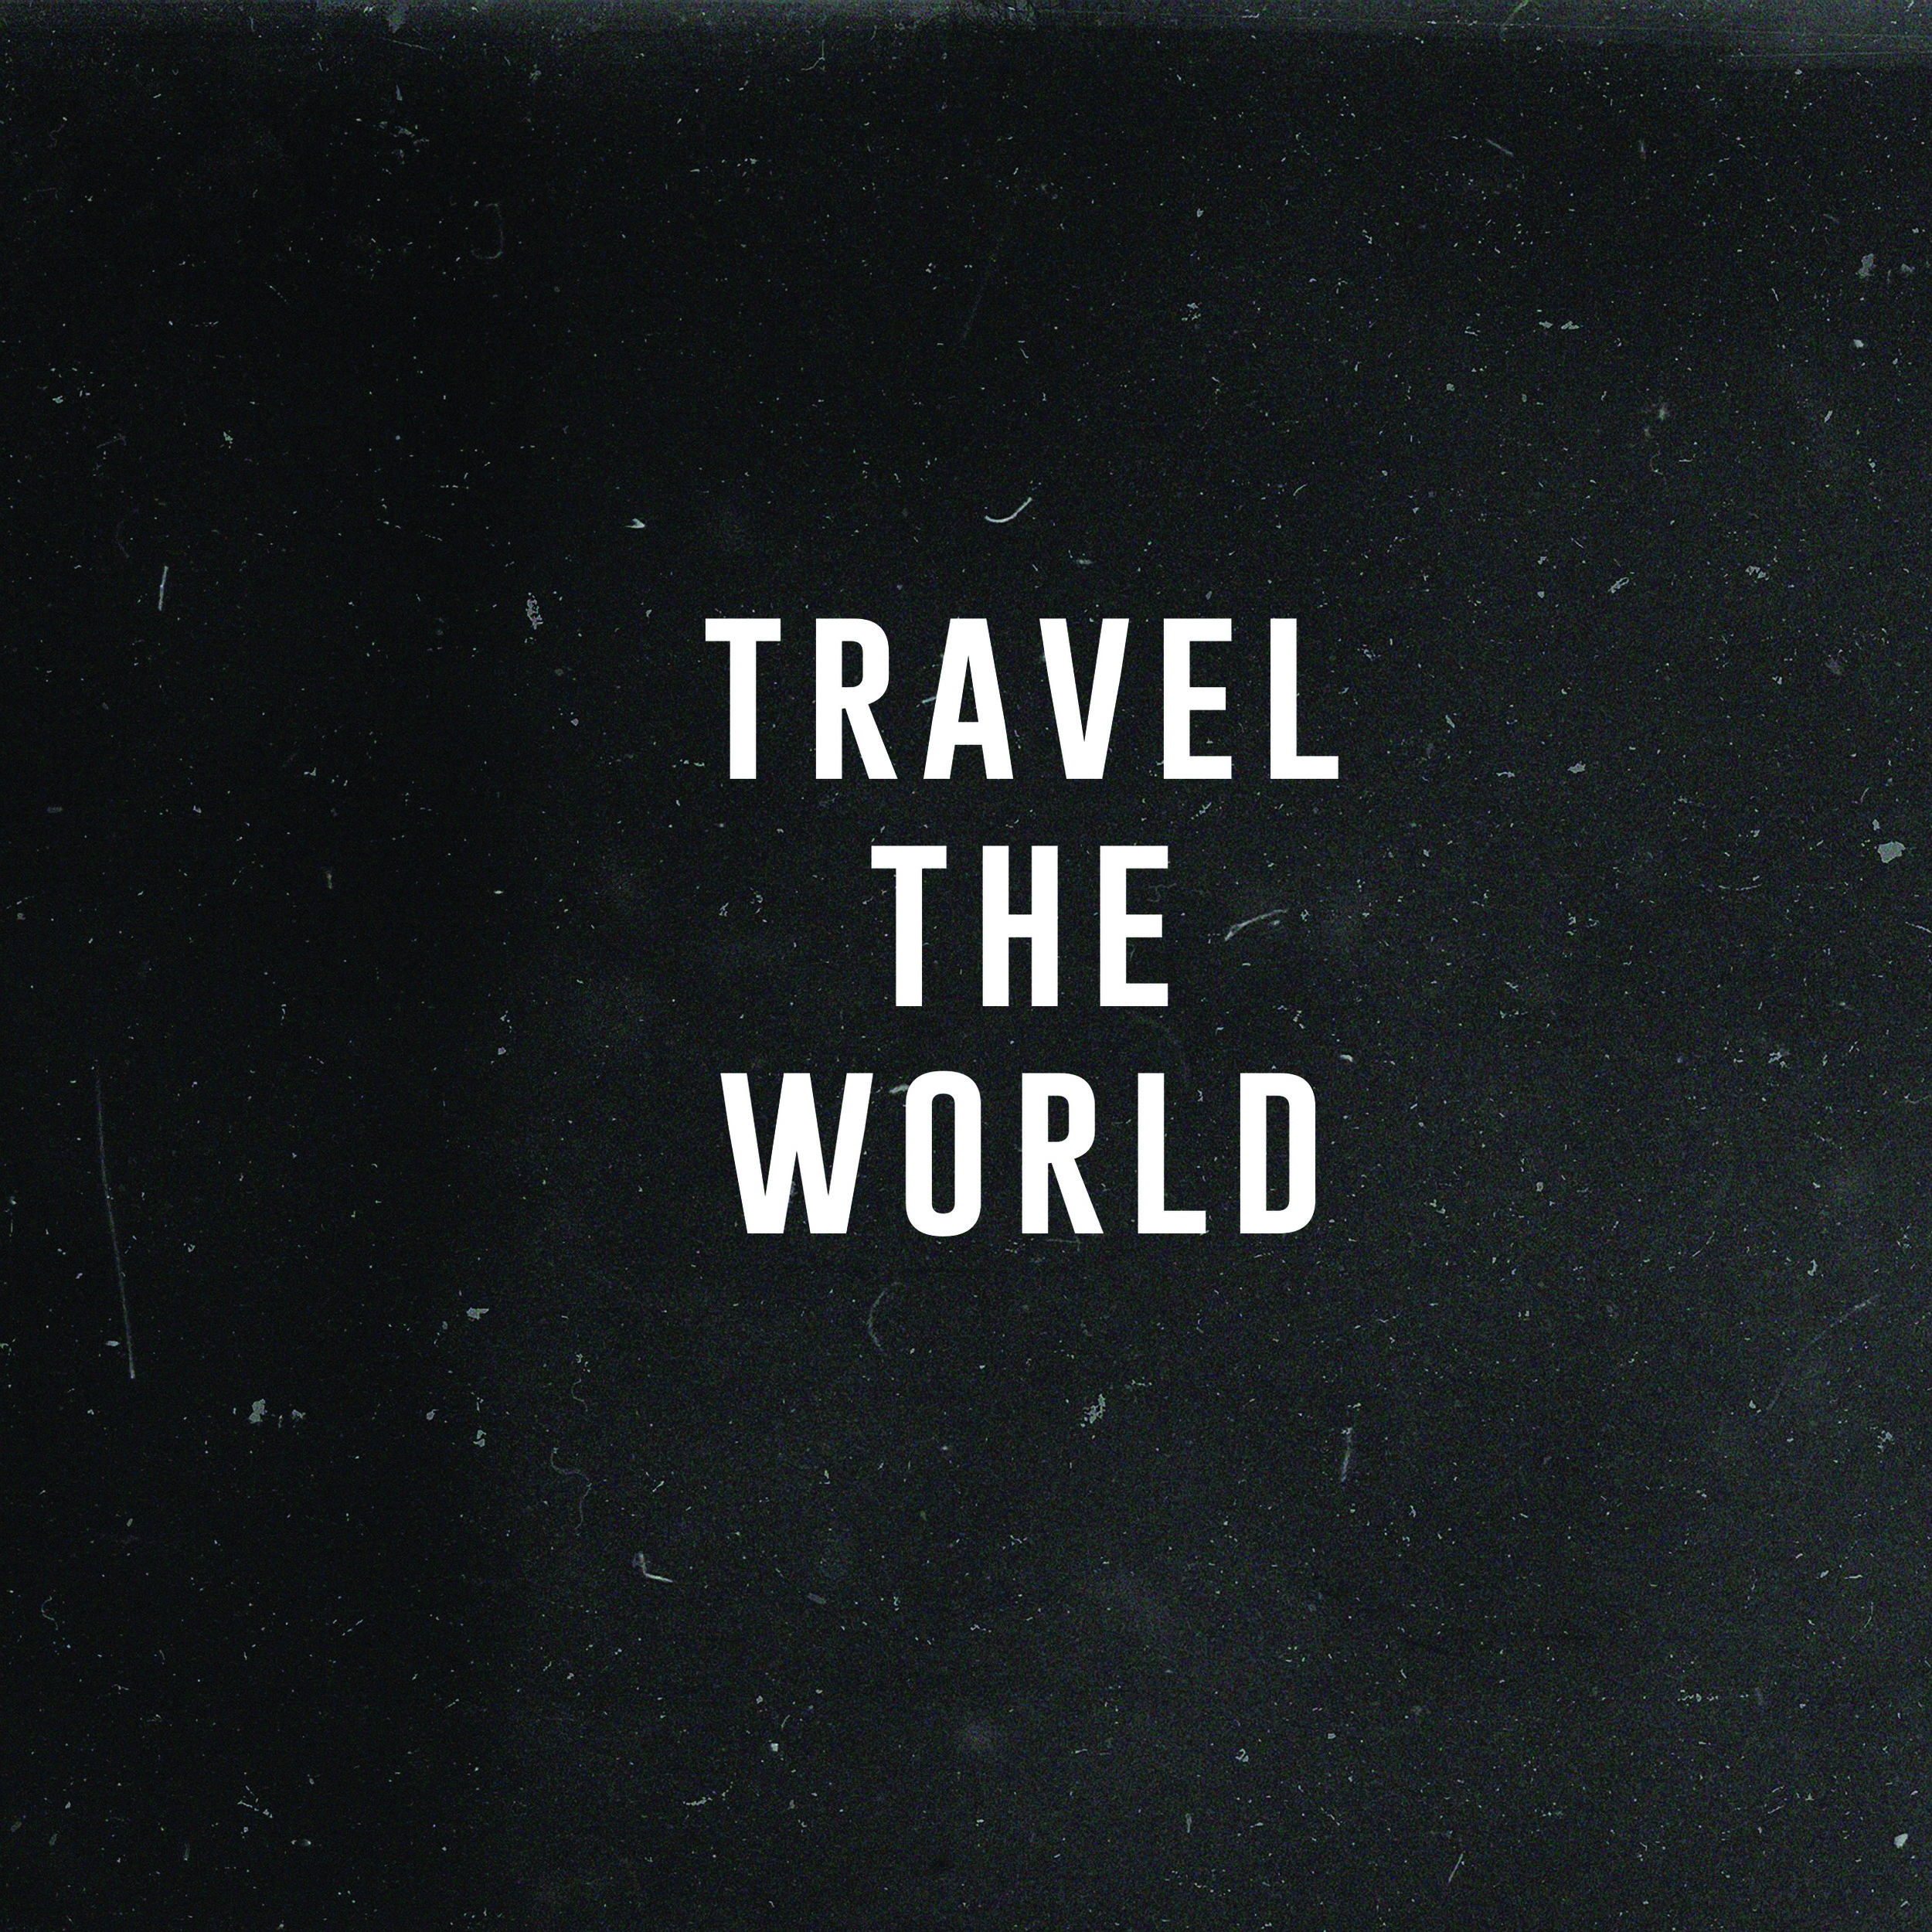 travel-the-world.jpg